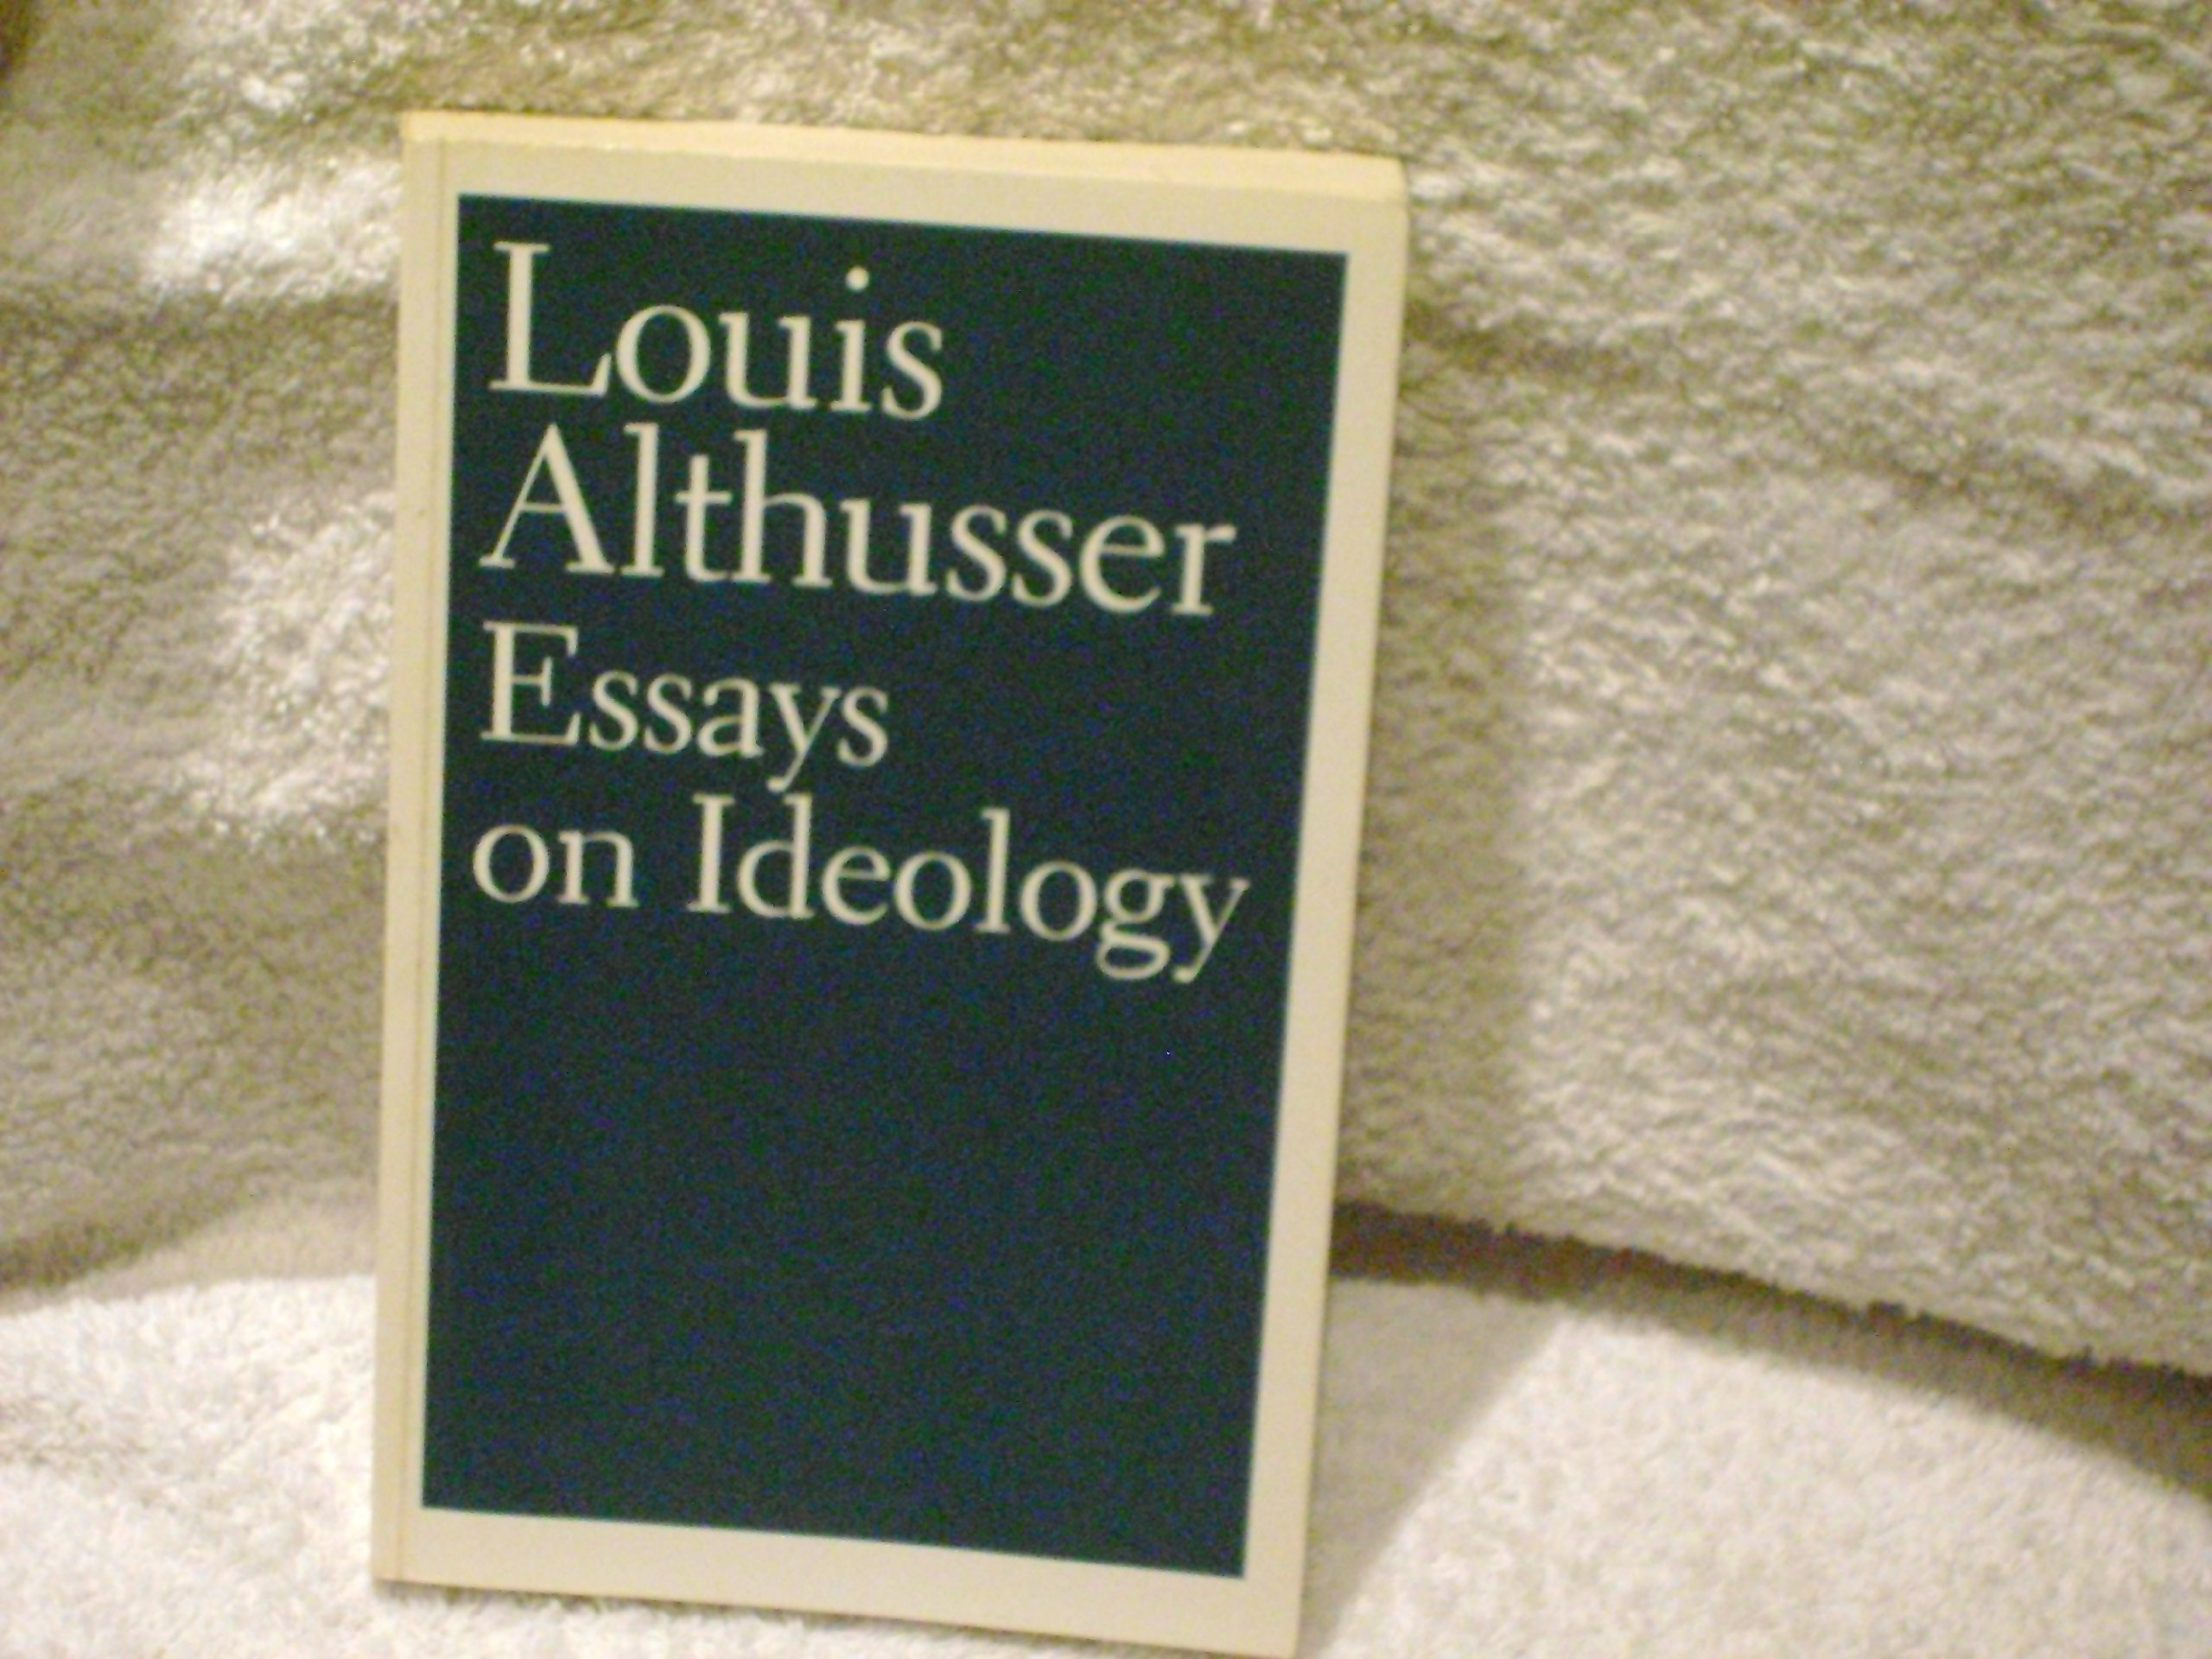 essays on ideology louis althusser b brewster g lock essays on ideology louis althusser b brewster g lock 9780860917847 com books